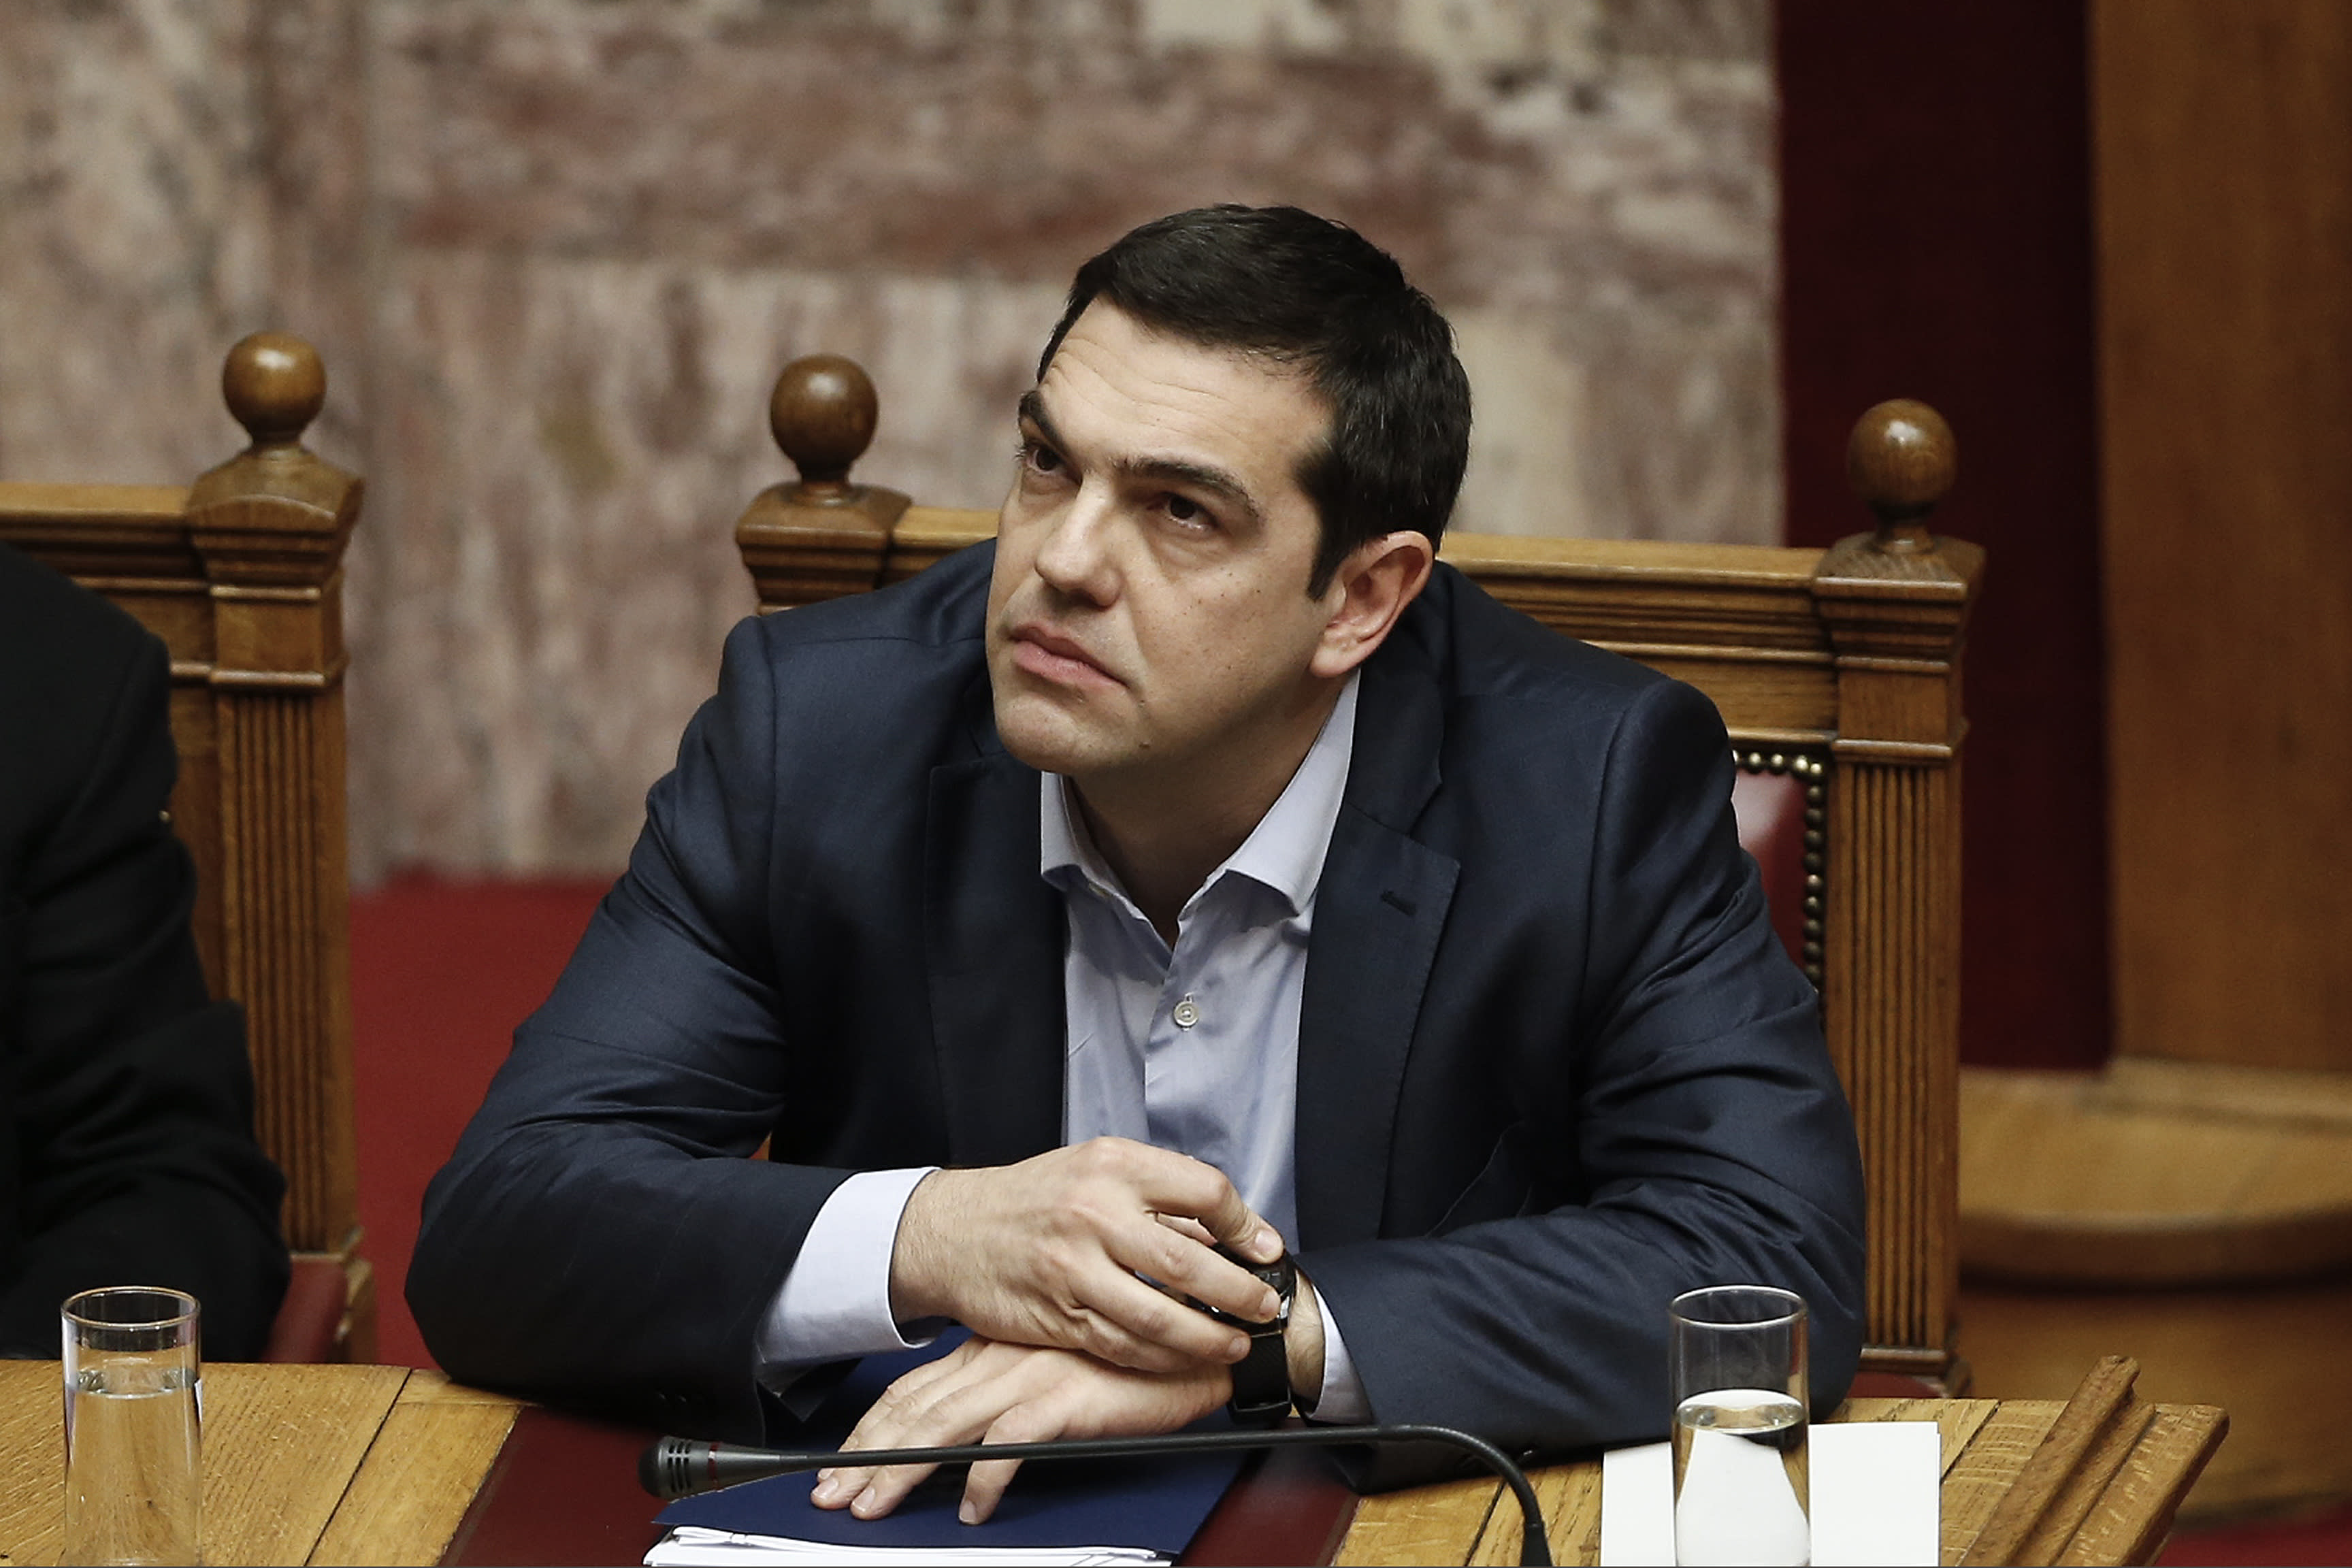 Greece disagrees with sanctions against Russia, Tsipras says